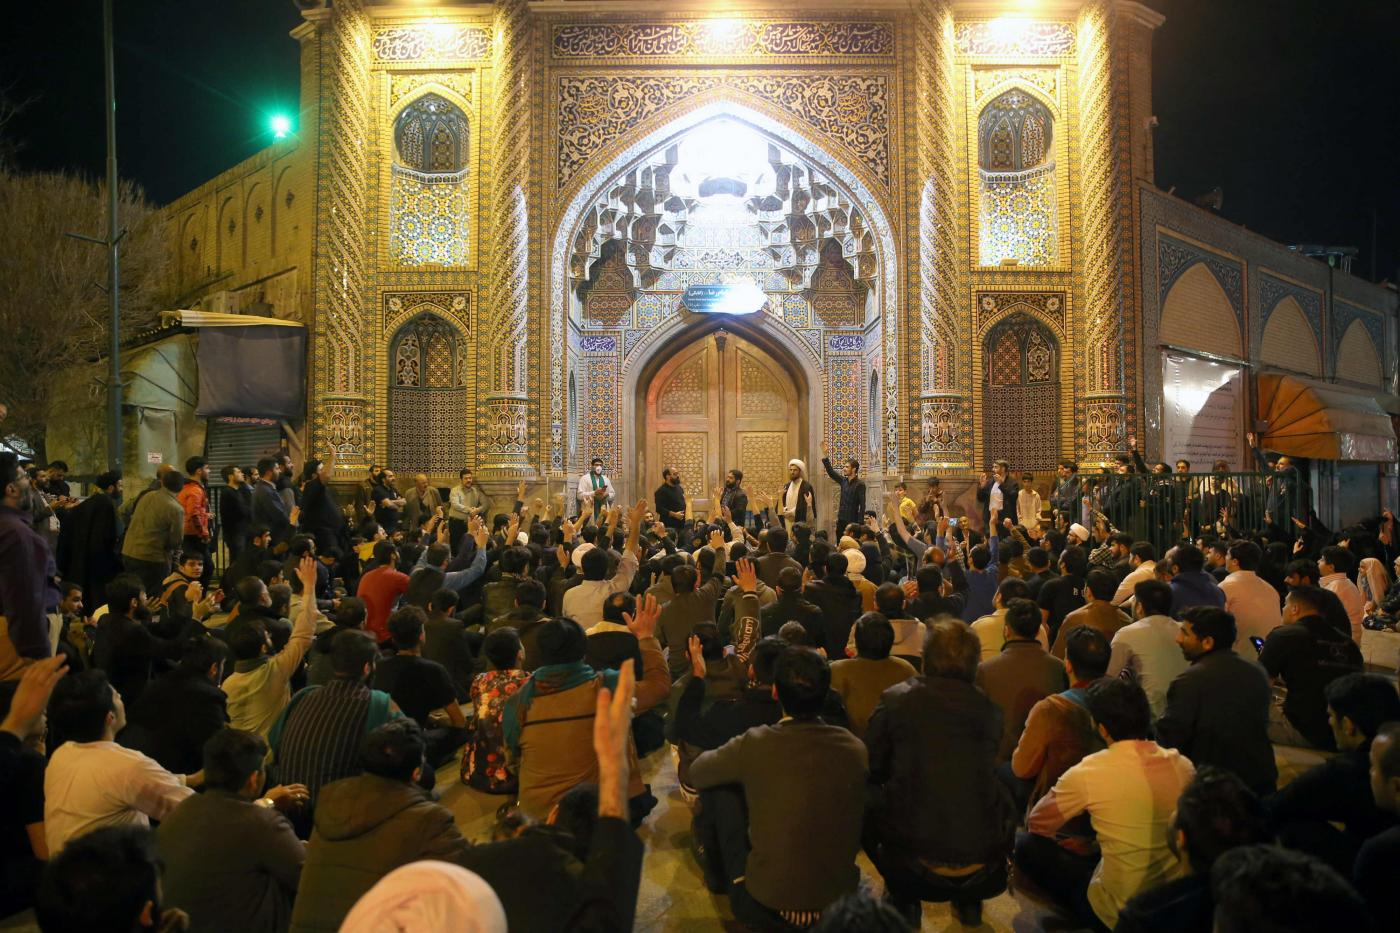 Coronavirus: Hardliners fear raids on Iran's closed shrines suggest deeper threat